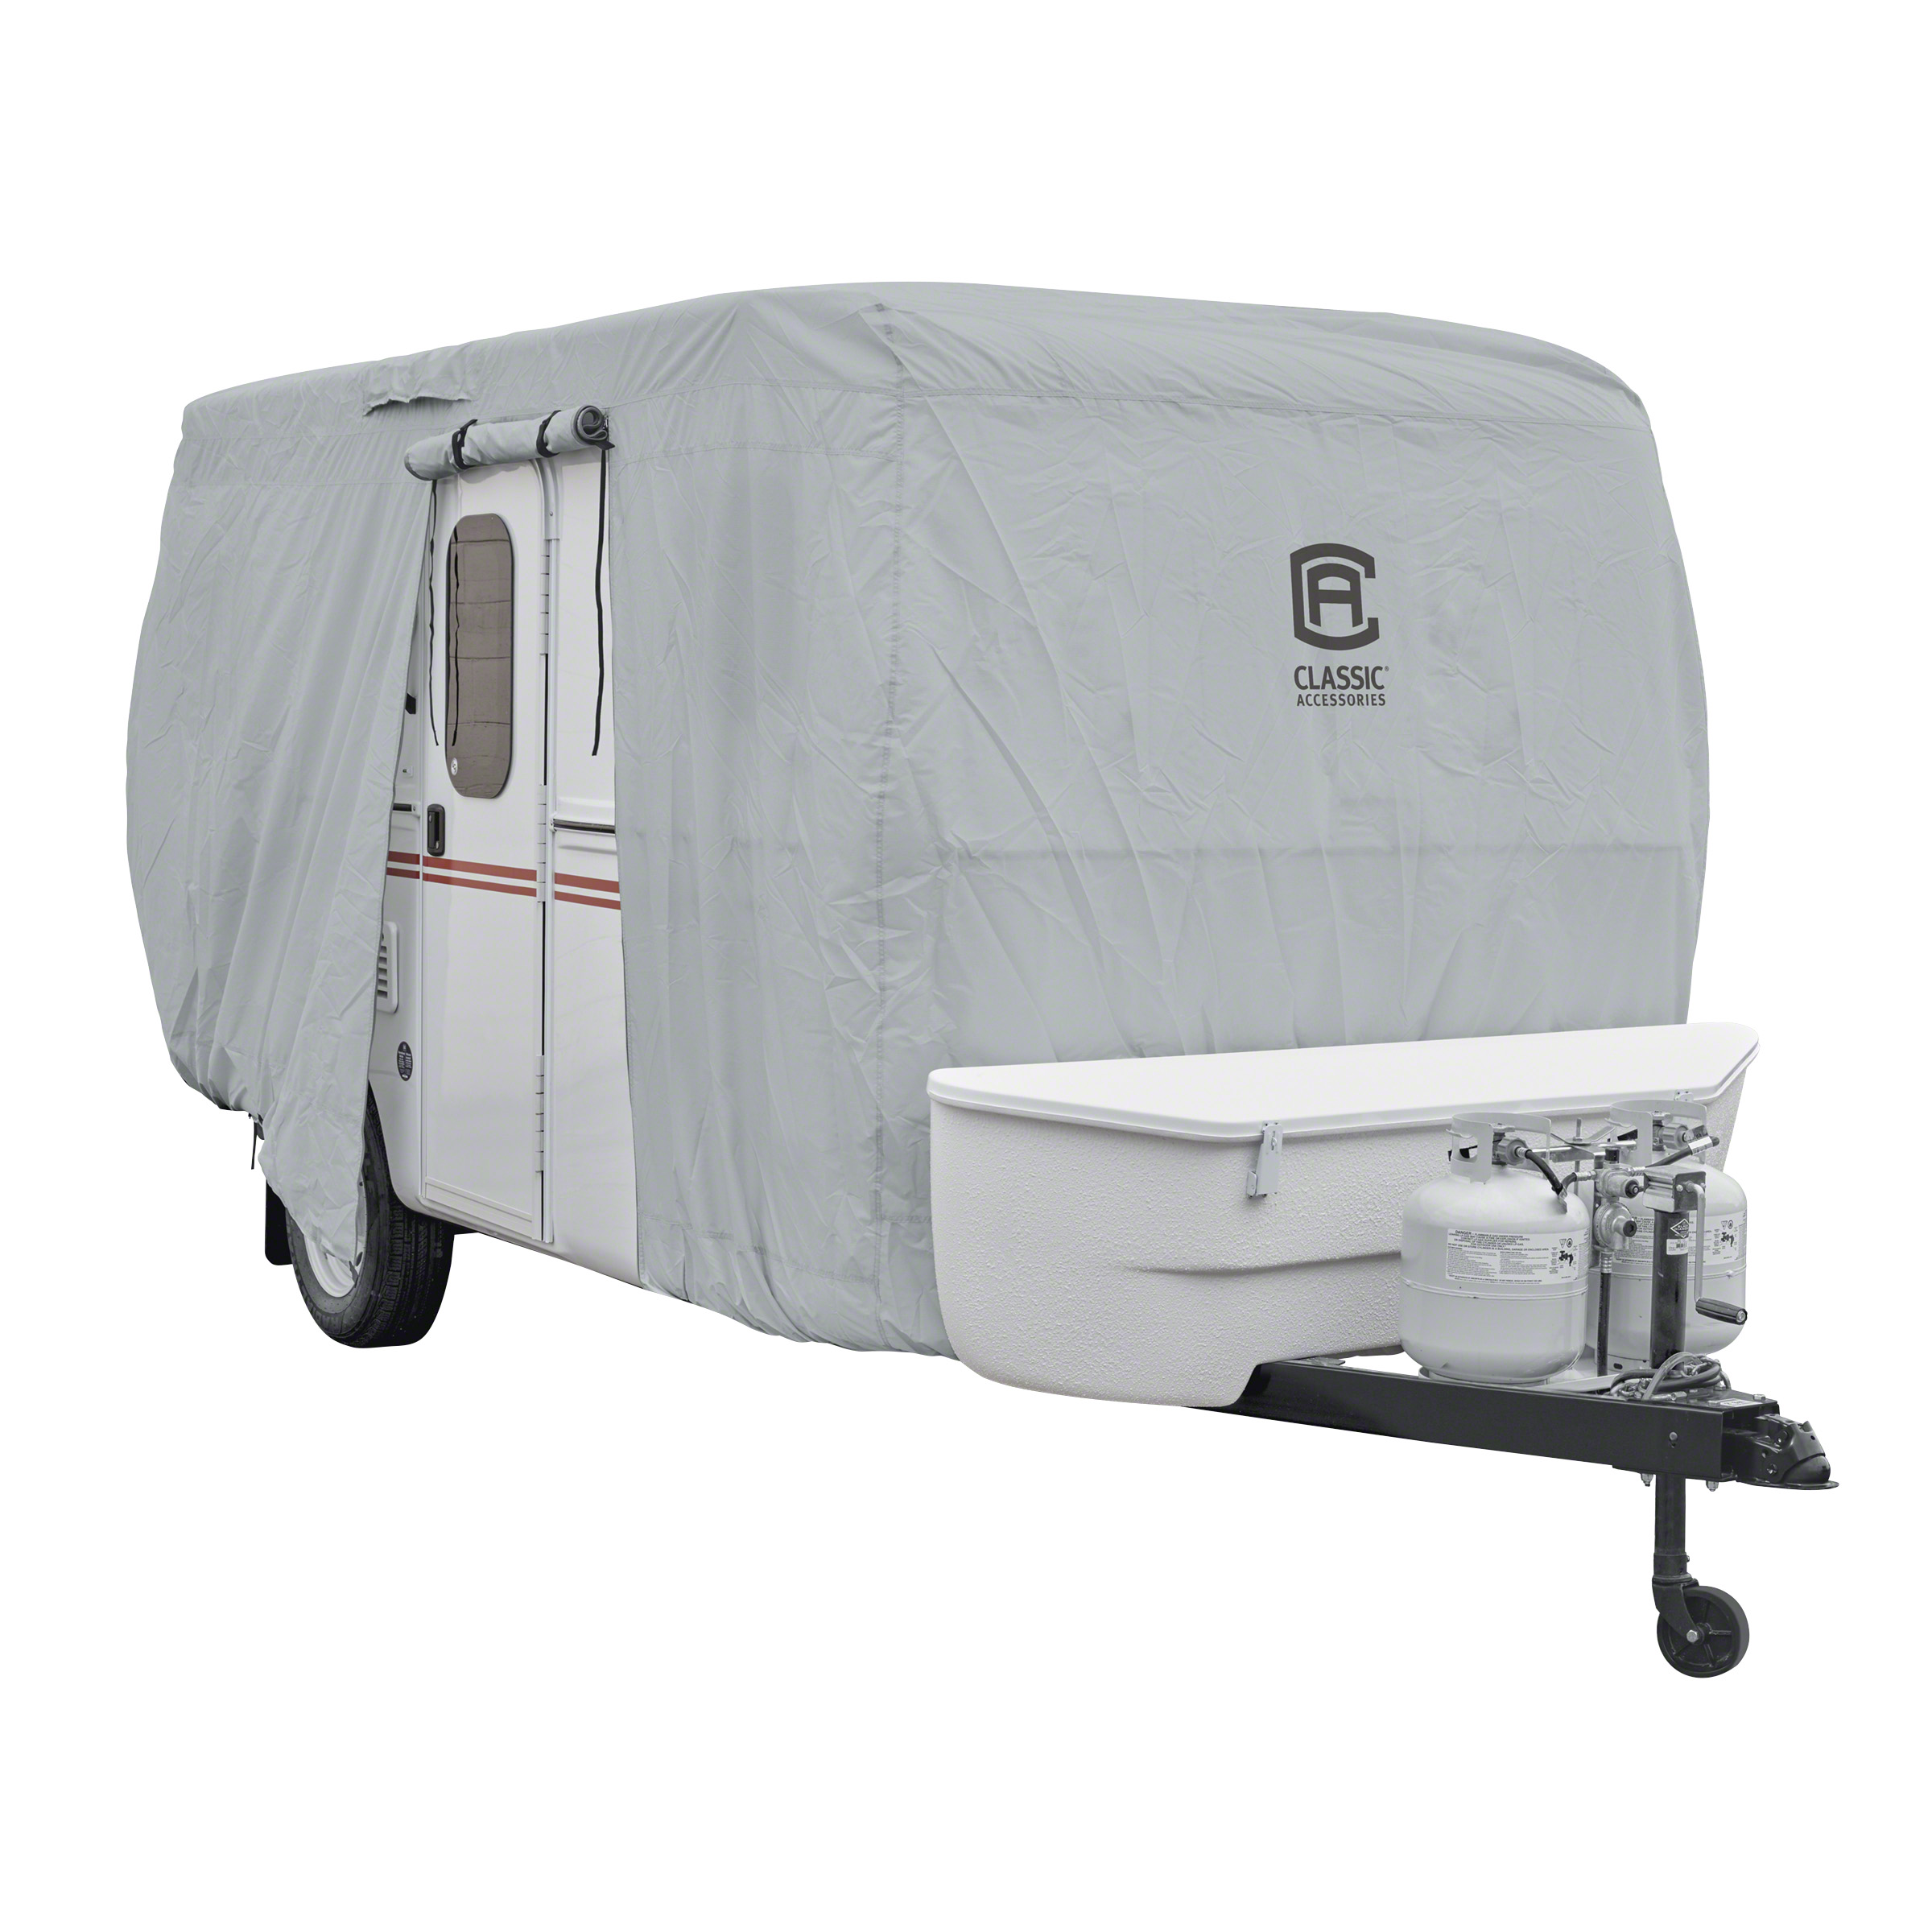 Classic Accessories OverDrive PermaPRO™ Deluxe Molded Fiberglass Travel Trailer Cover, Fits up to 8'-10' long RVs - Lightweight Ripstop Fabric with RV Cover (80-407-141001-RT)